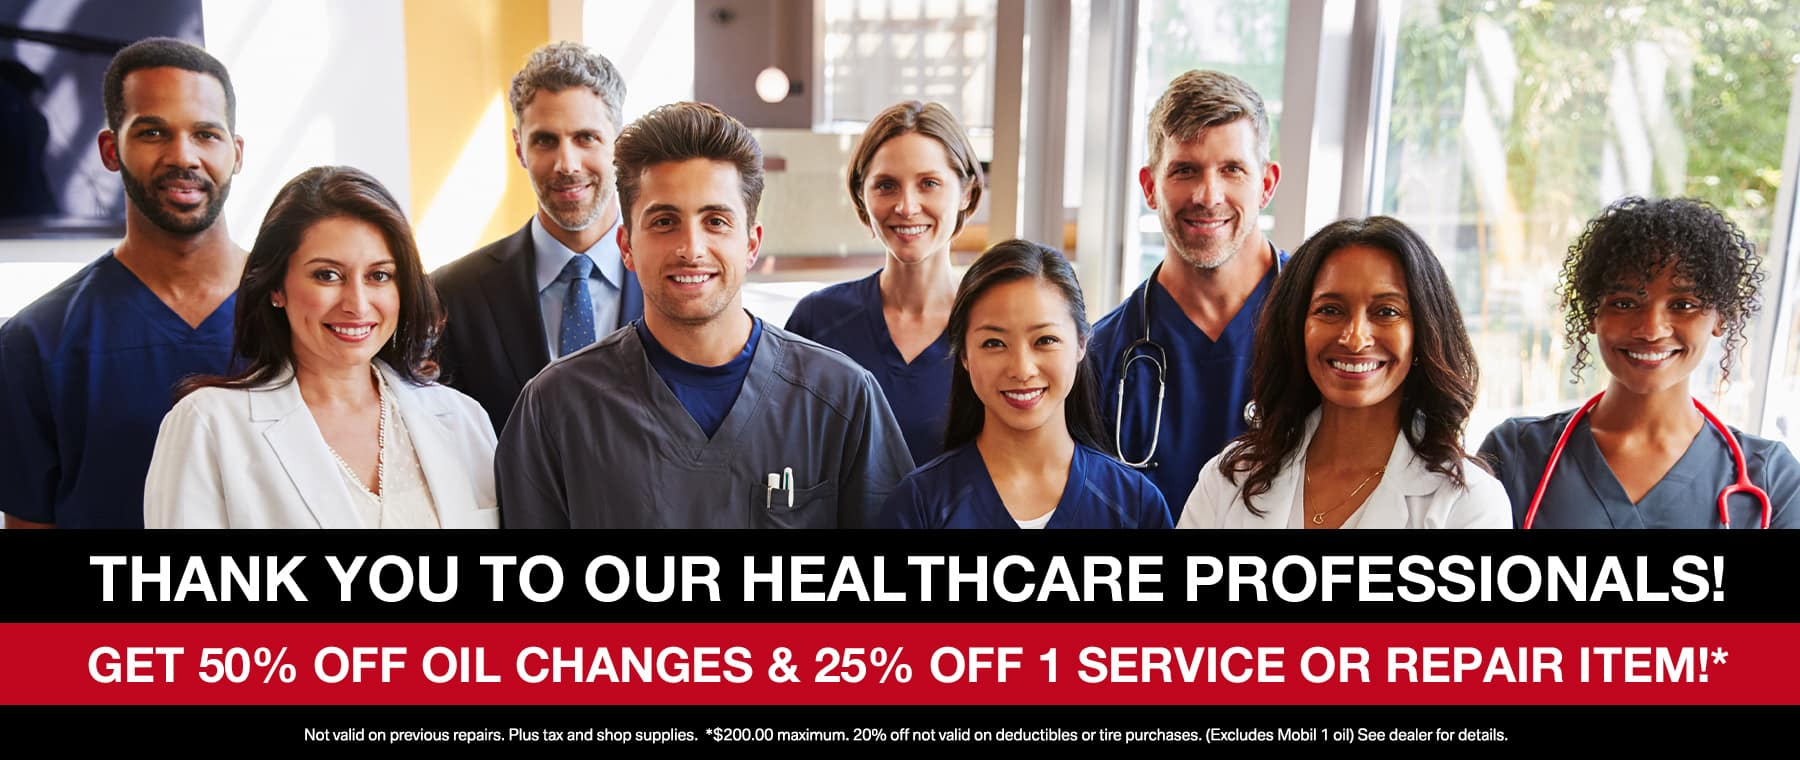 Healthcare Professionals service offer